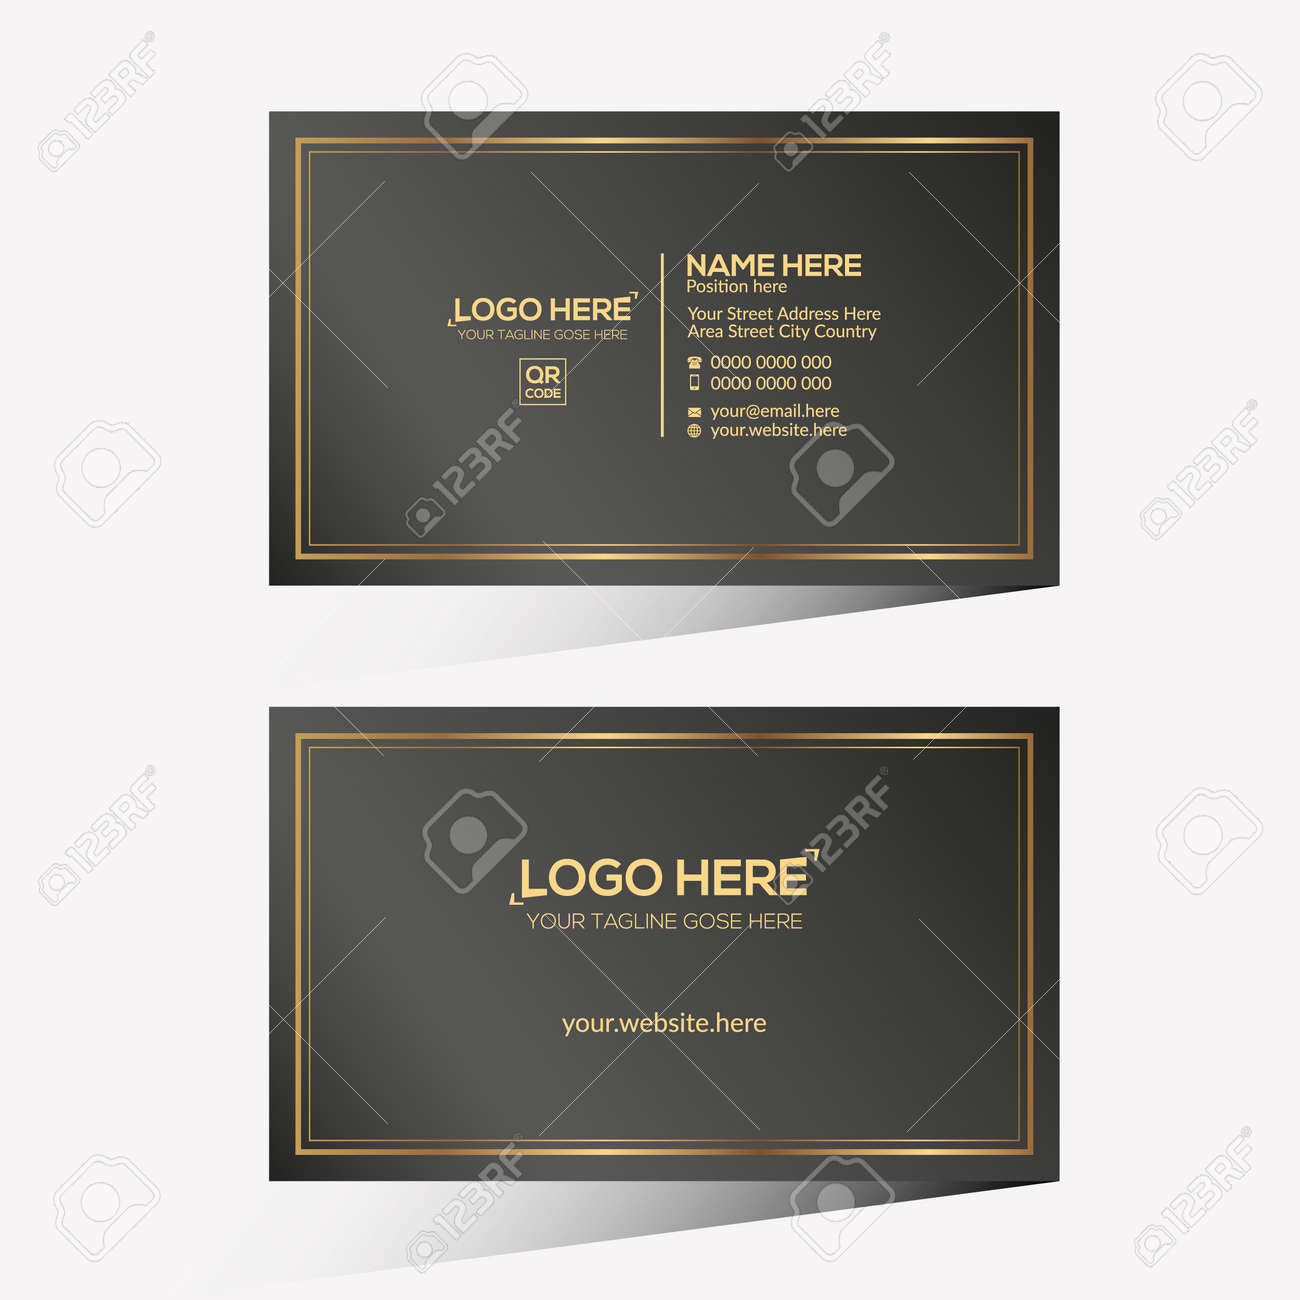 golden and black colored vector business card design for any company use - 172189322